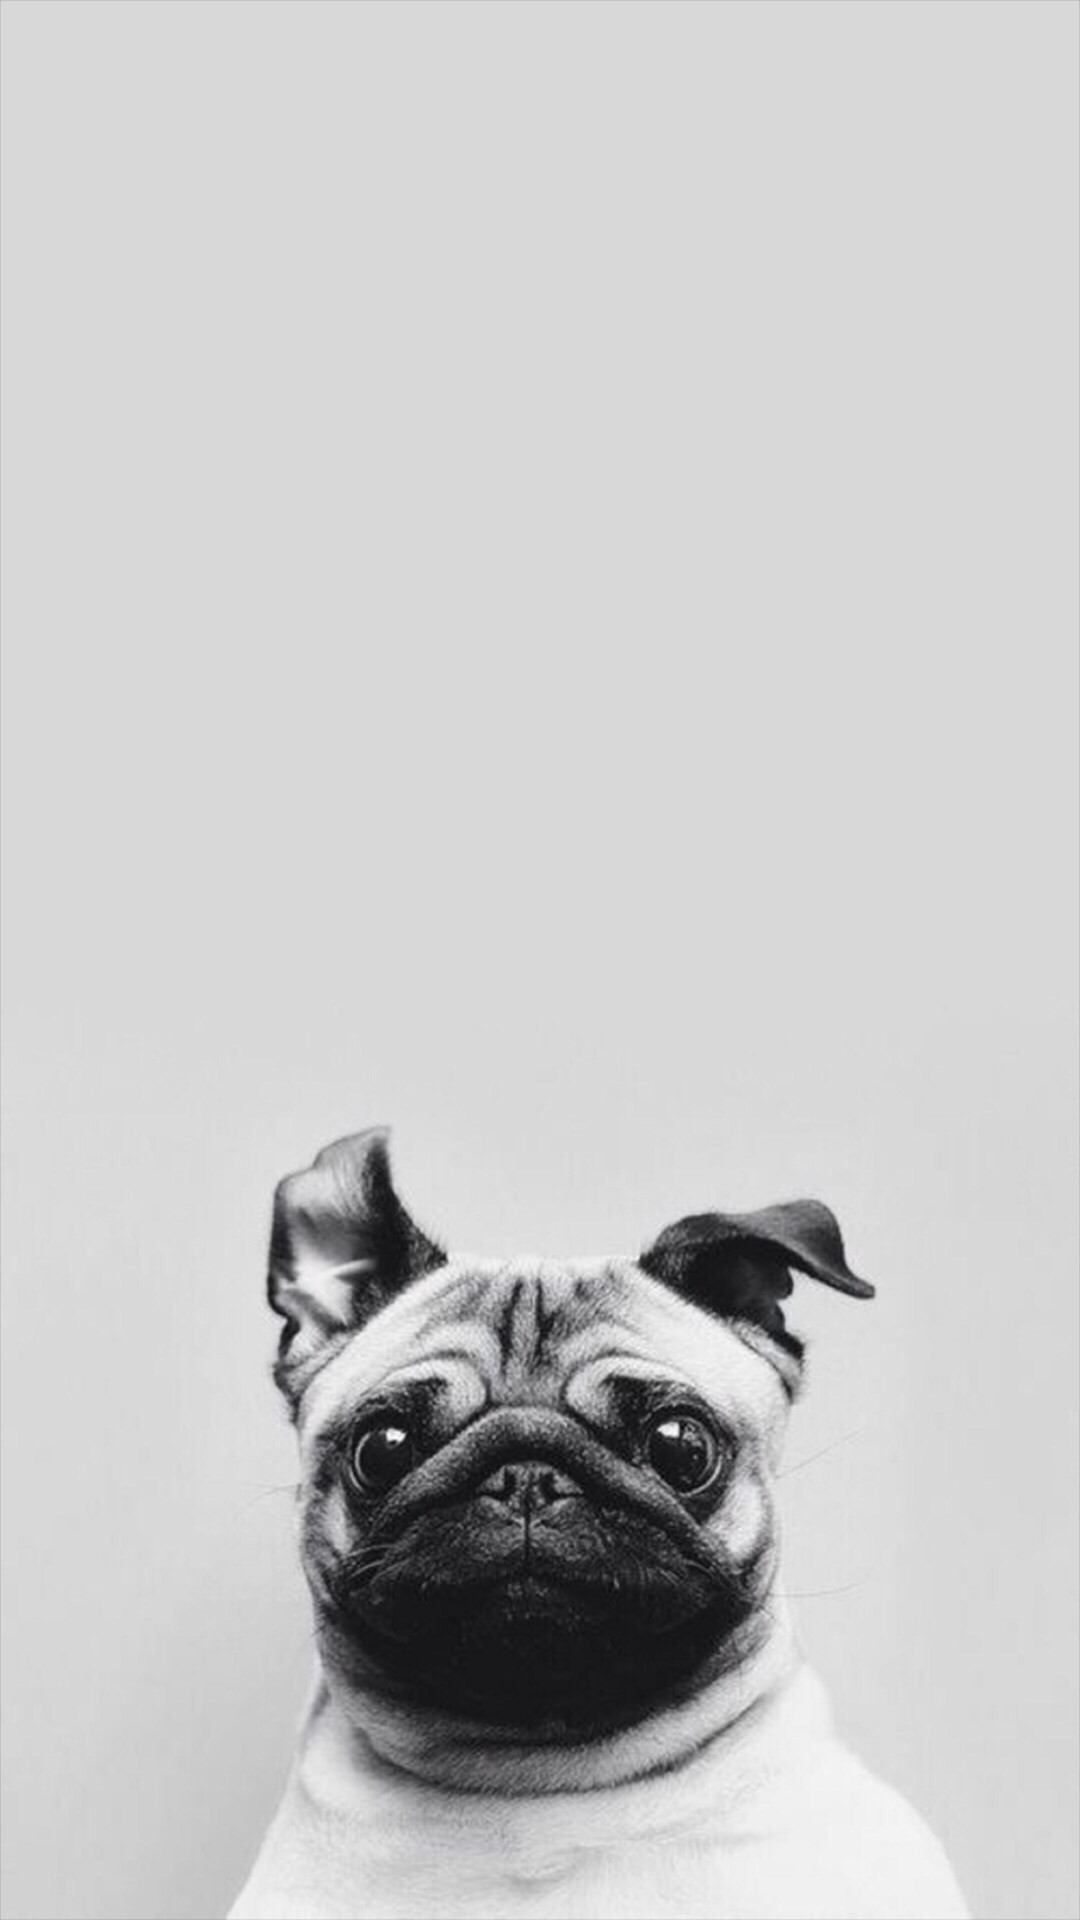 … funny puppy dog simple macro iphone 8 wallpaper download iphone …